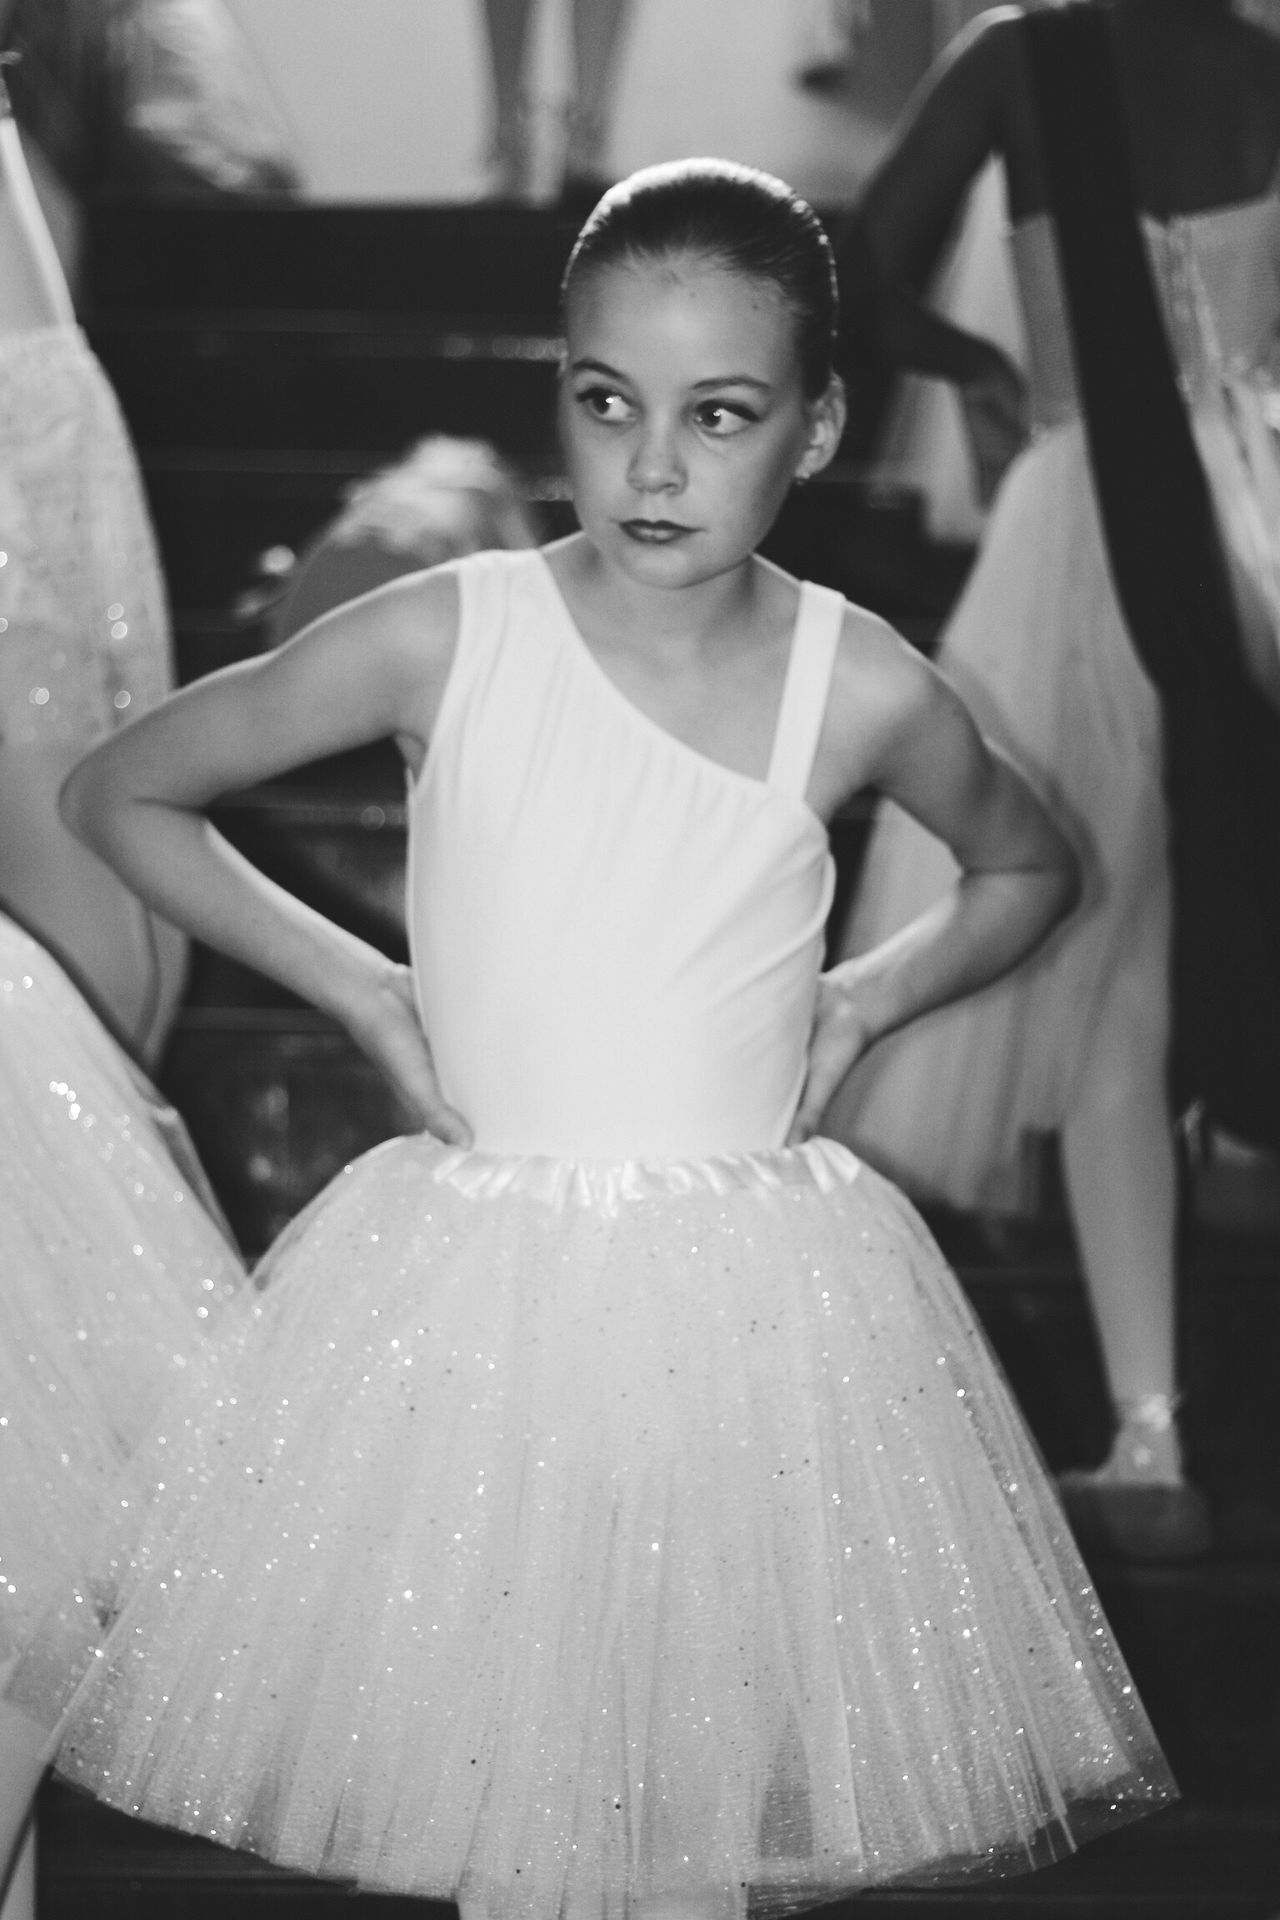 Showtime ✨ Ballet Ballet Dancer Beautiful Woman Portrait Beautiful People Dress Beauty Arts Culture And Entertainment Young Adult Women Evening Gown Ballerina Showtime Backstage Real People Glitter Ballet Shoes Ballet Studio